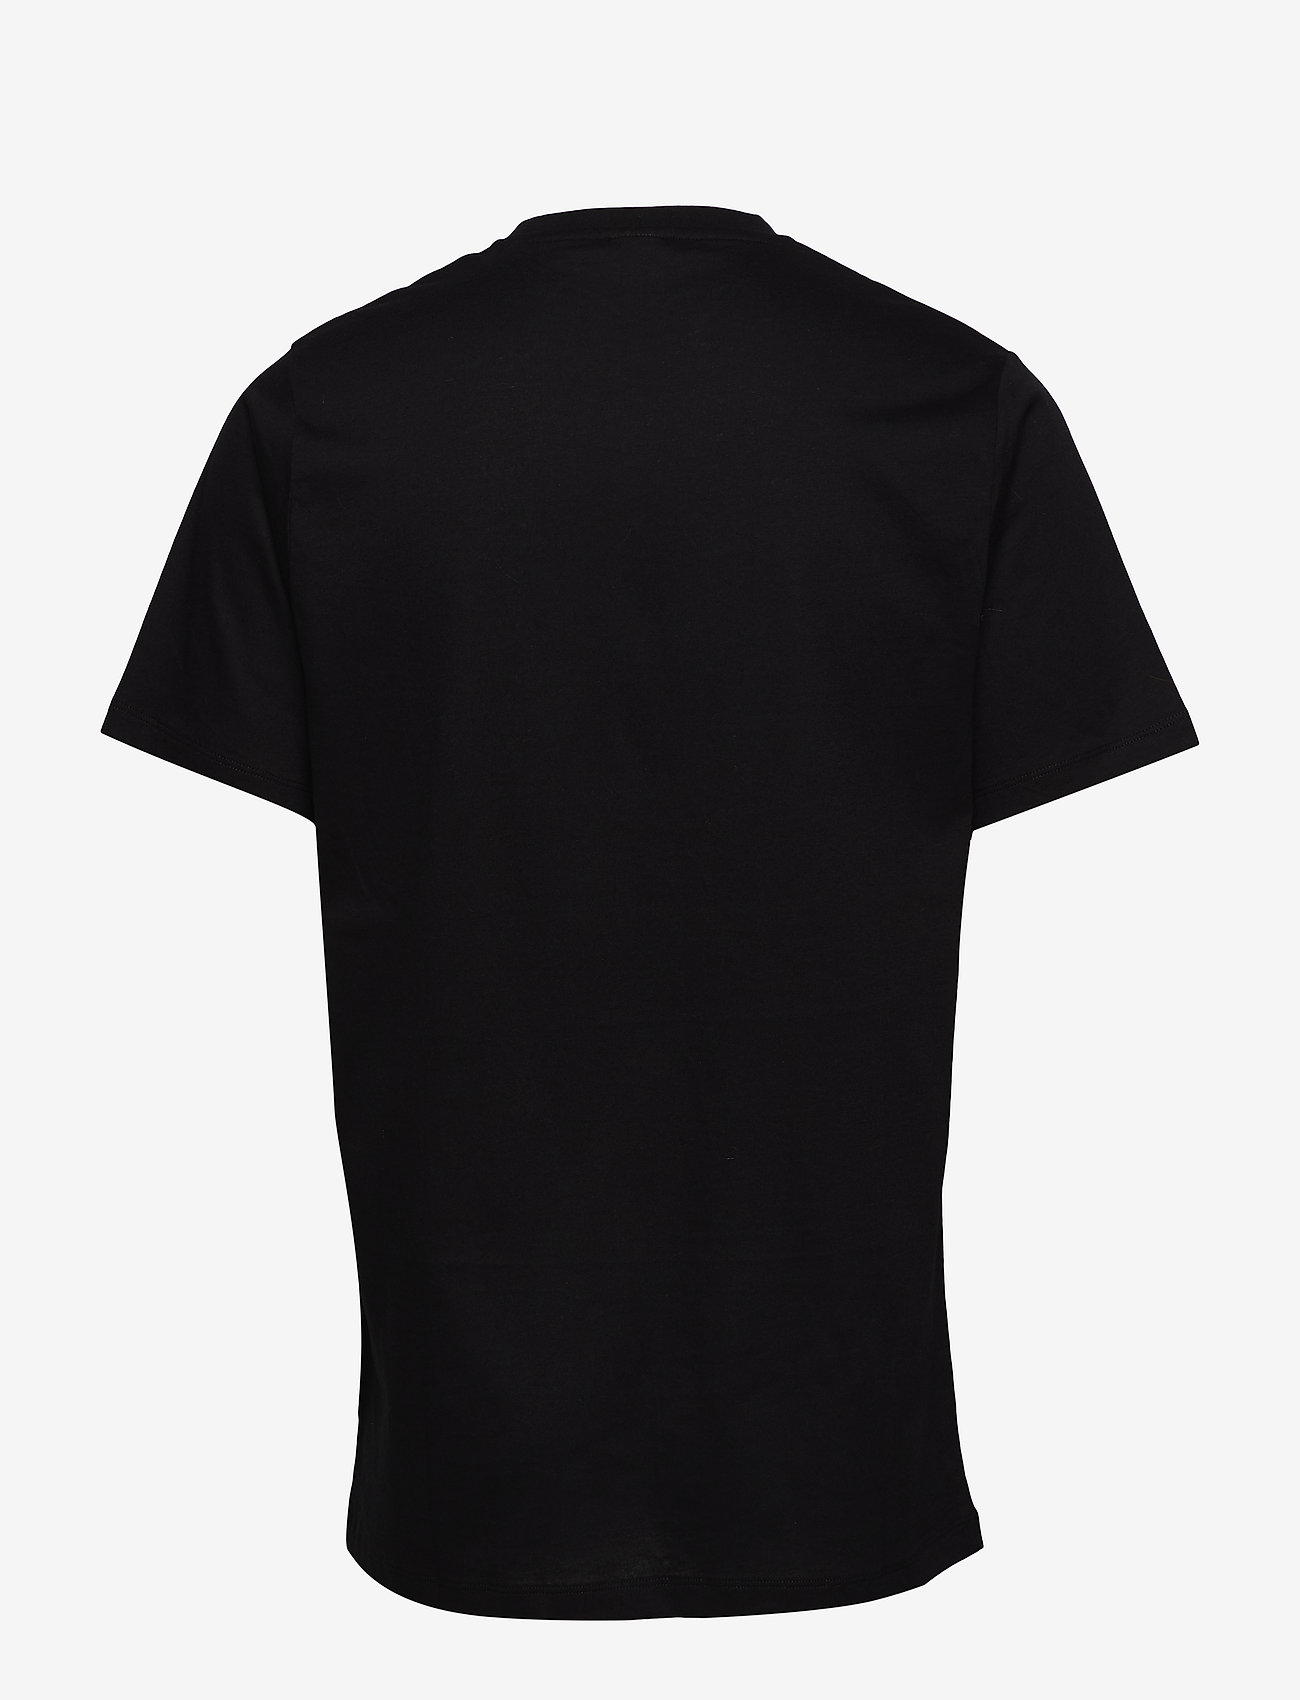 Nn07 Elmer Pocket 3377 - T-shirts Black